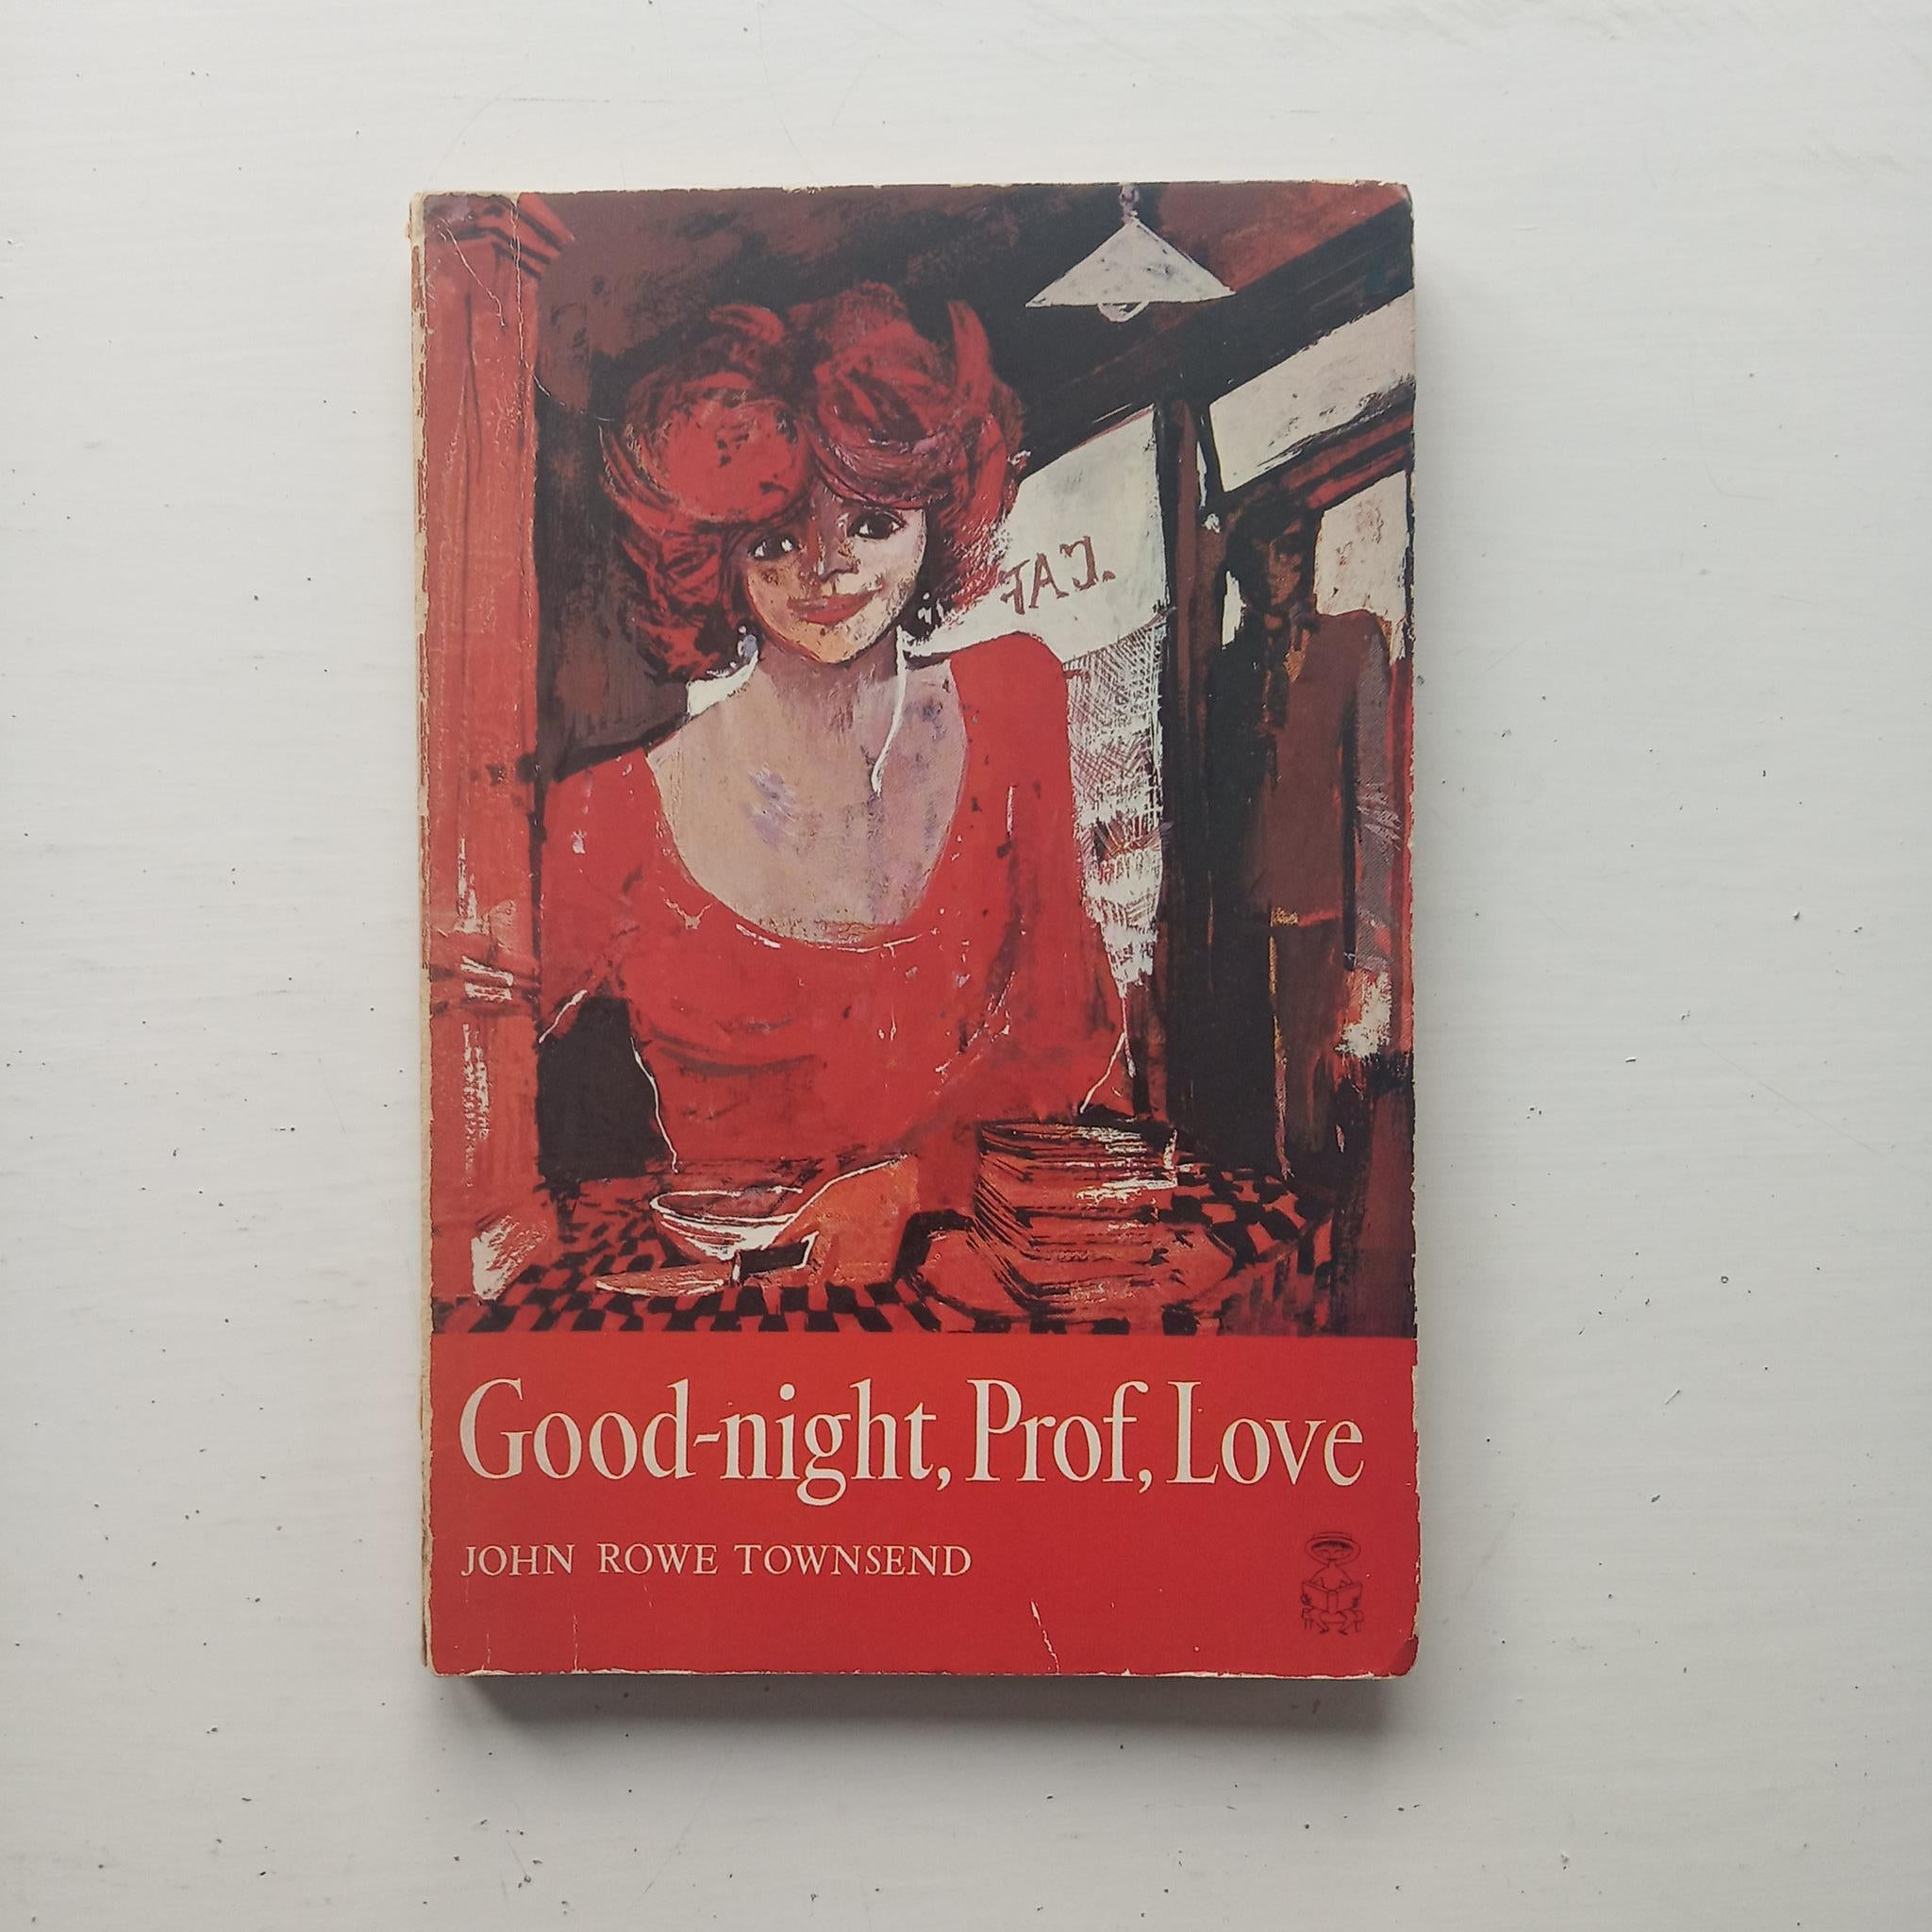 Good-night, Prof, Love by John  Rowe Townsend